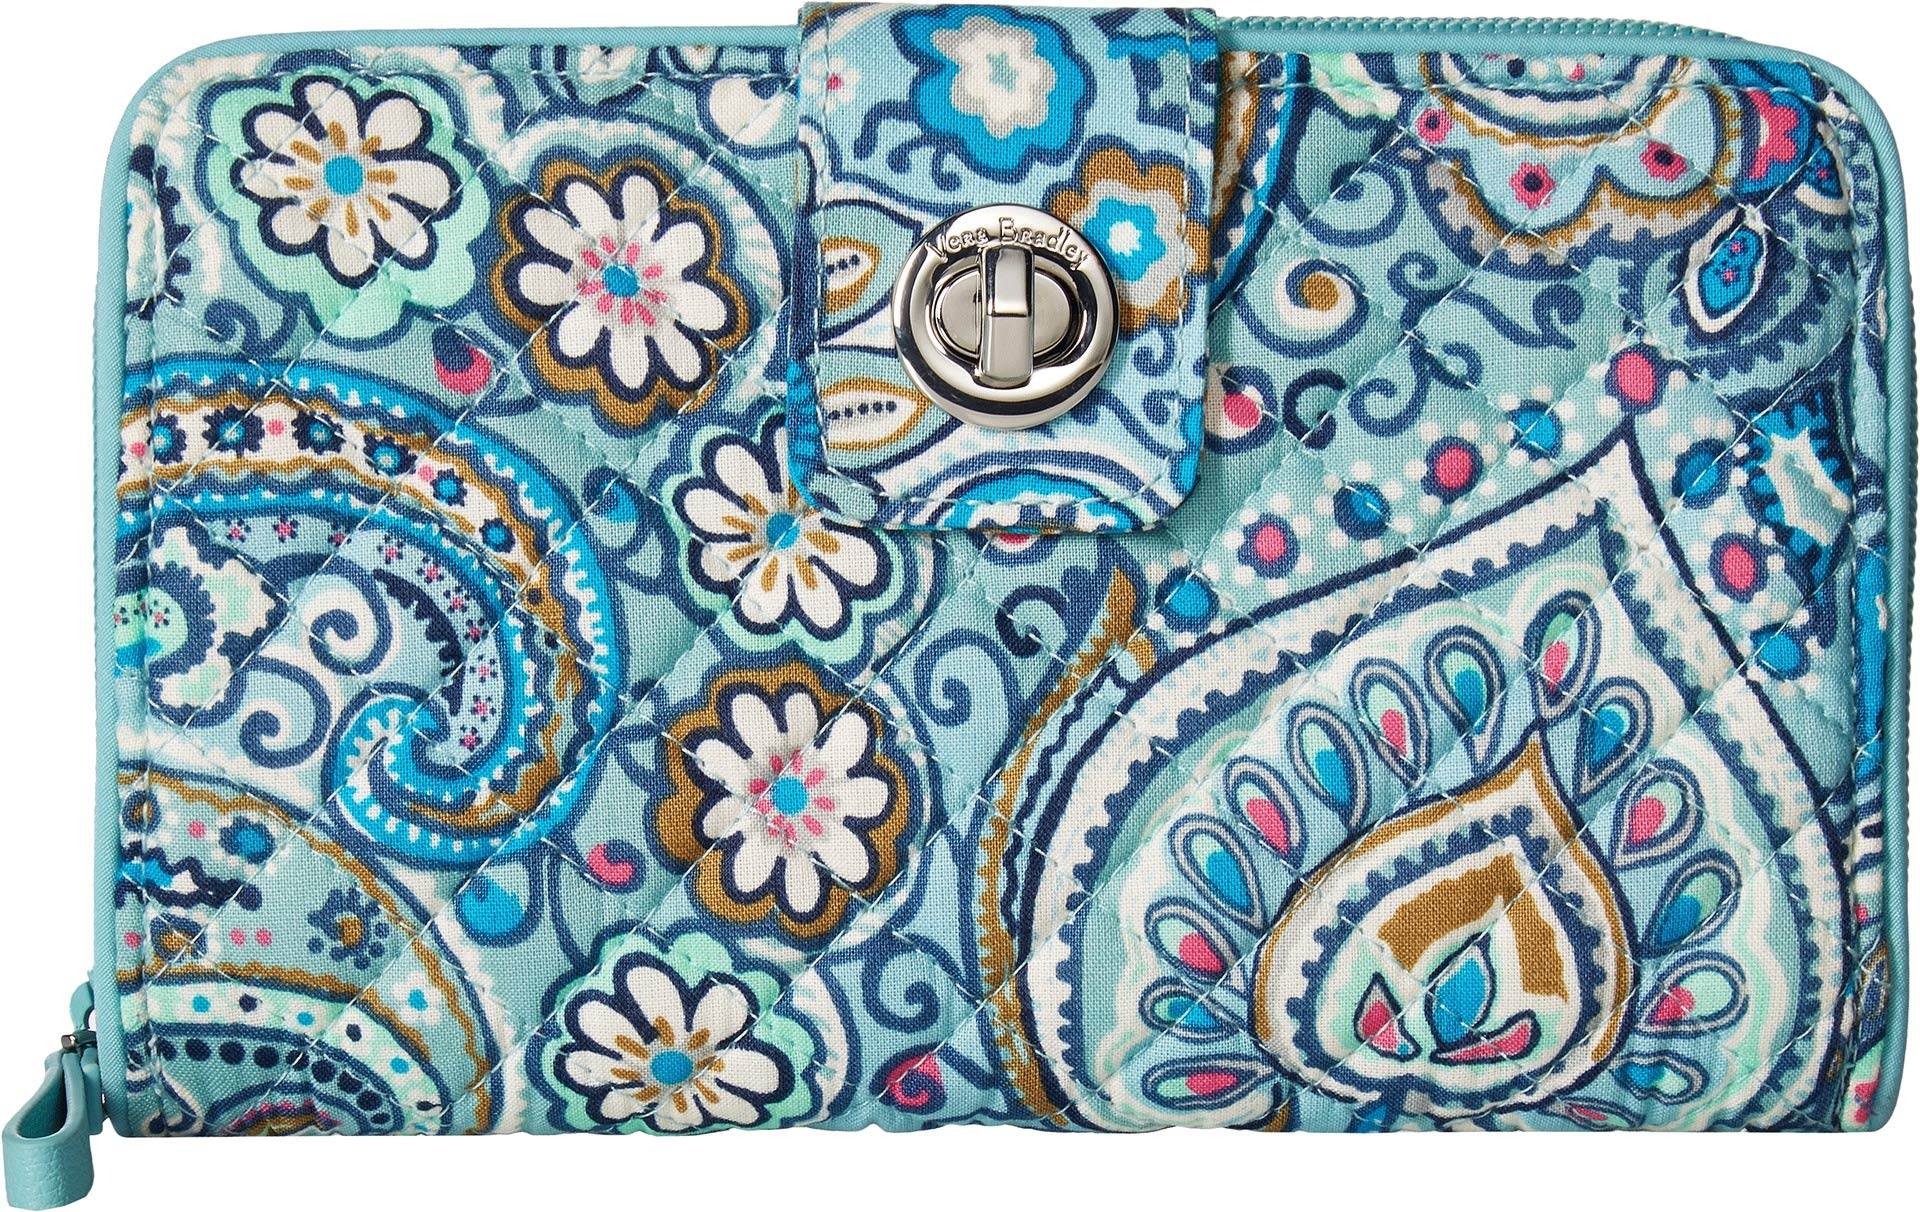 Vera Bradley Women's Iconic RFID Turnlock Wallet Daisy Dot Paisley One Size